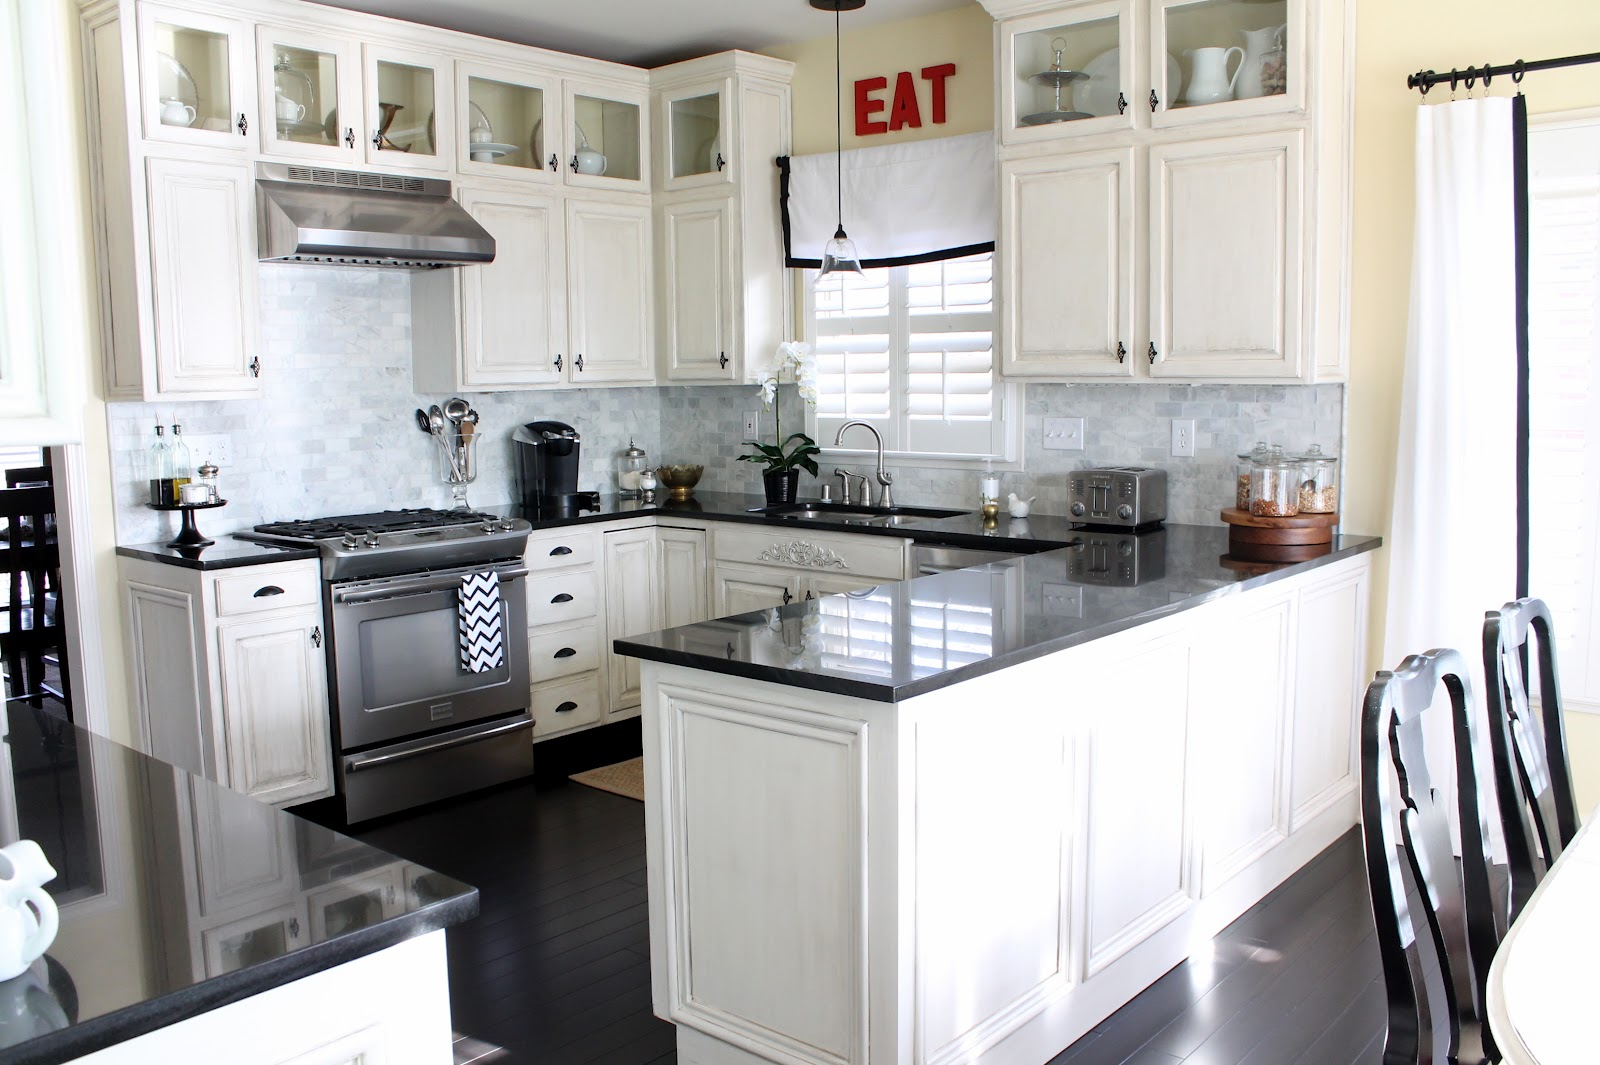 The appealing Glossy white subway tile backsplash kitchen image